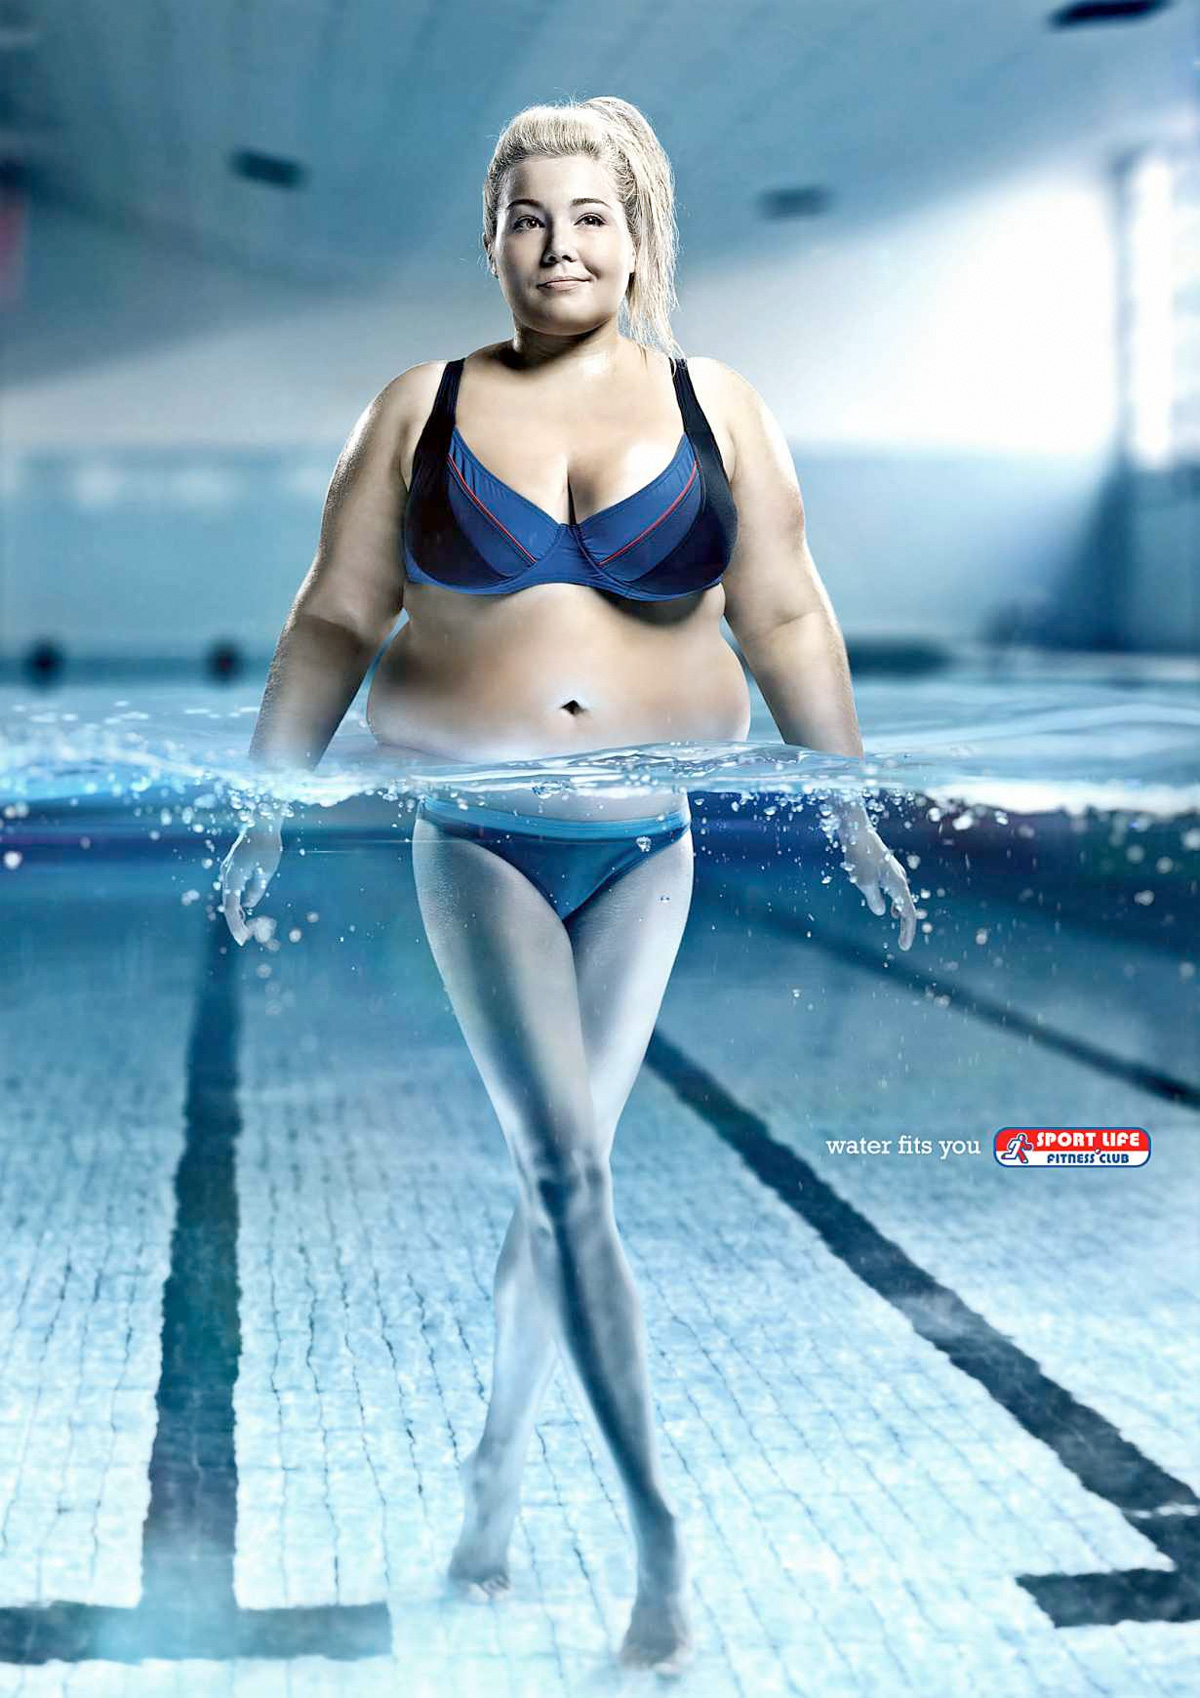 SportLife Water Fits You